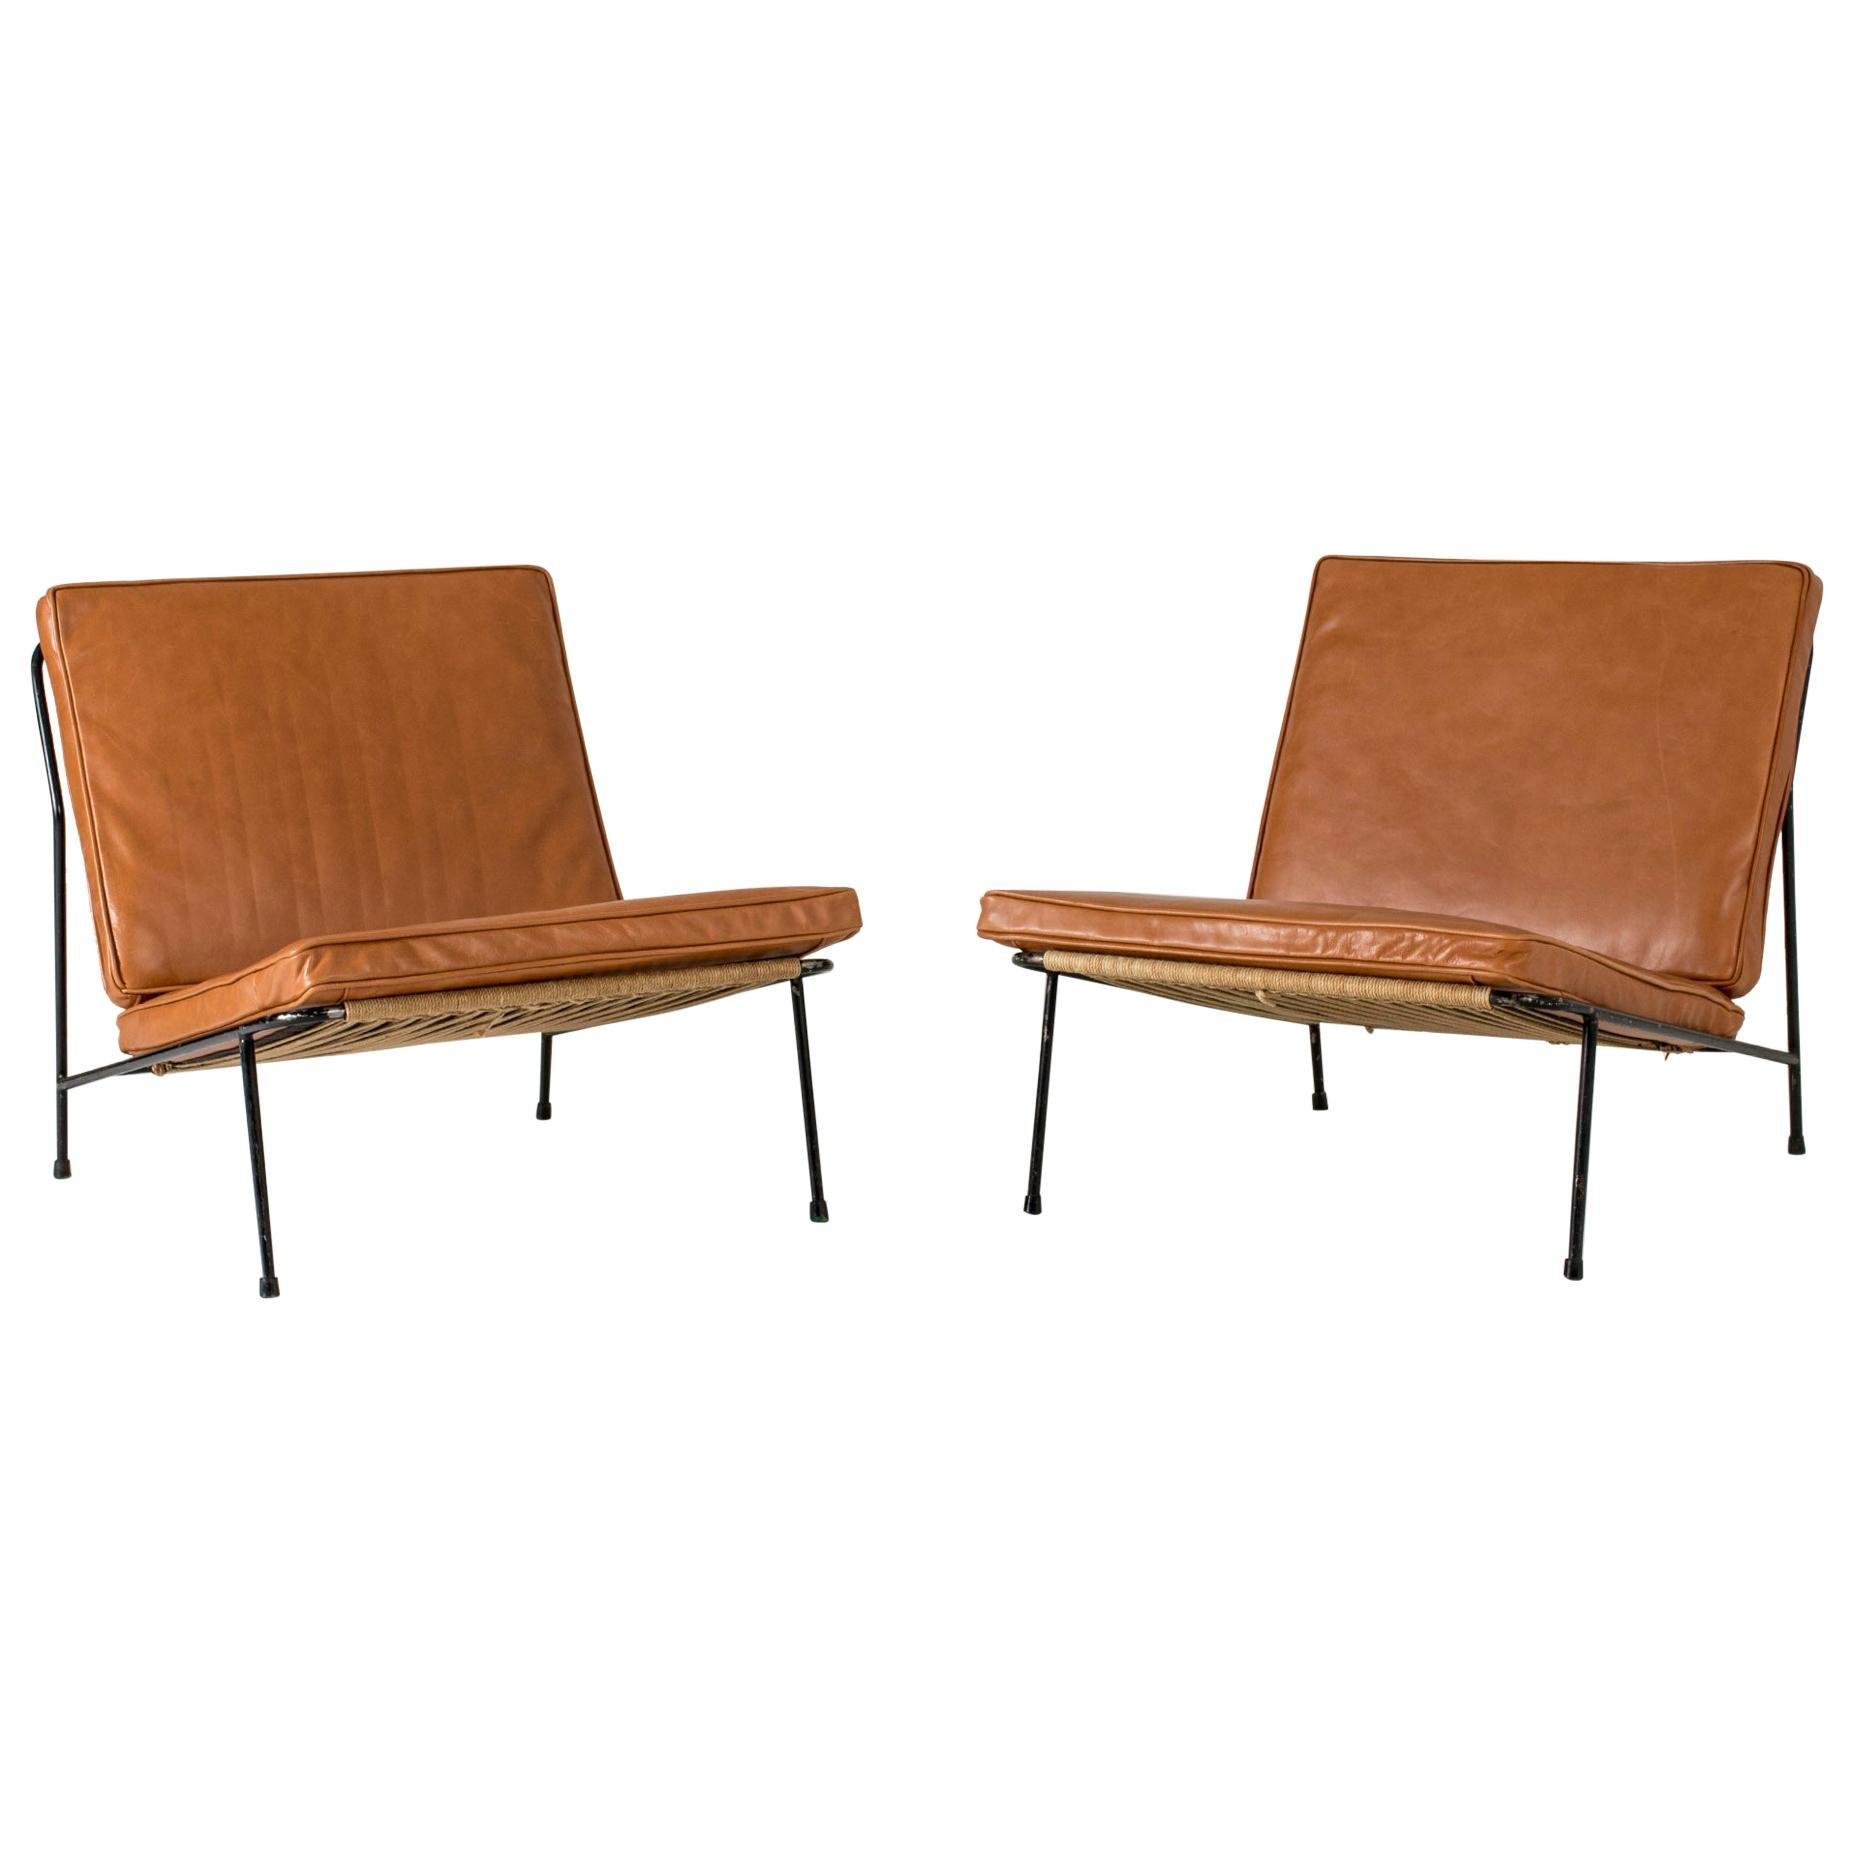 Pair of Leather Lounge Chairs by Alf Svensson